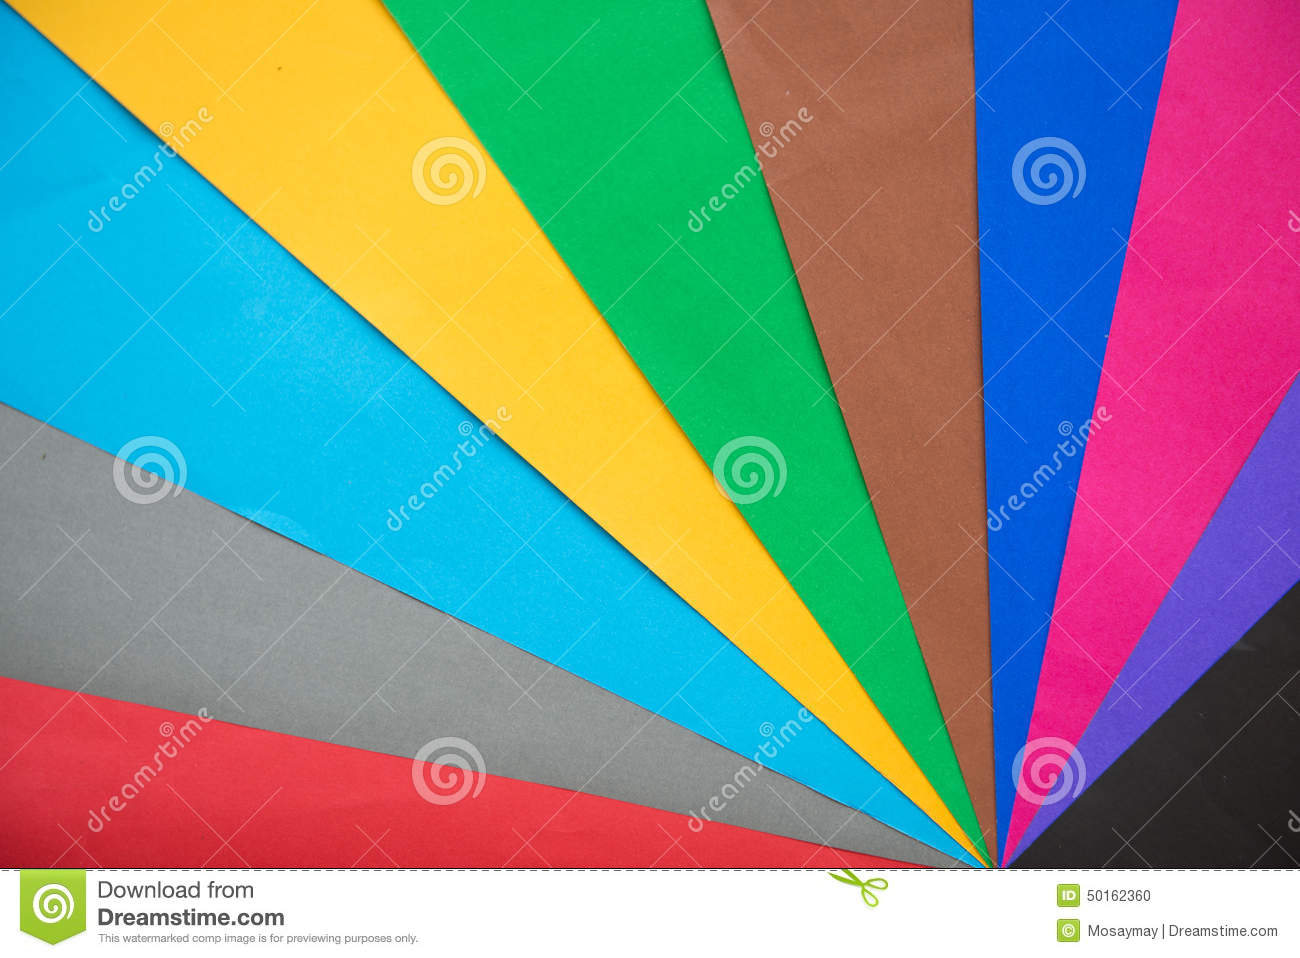 Lot of color paper for crafts idea stock photo image for Colour paper craft